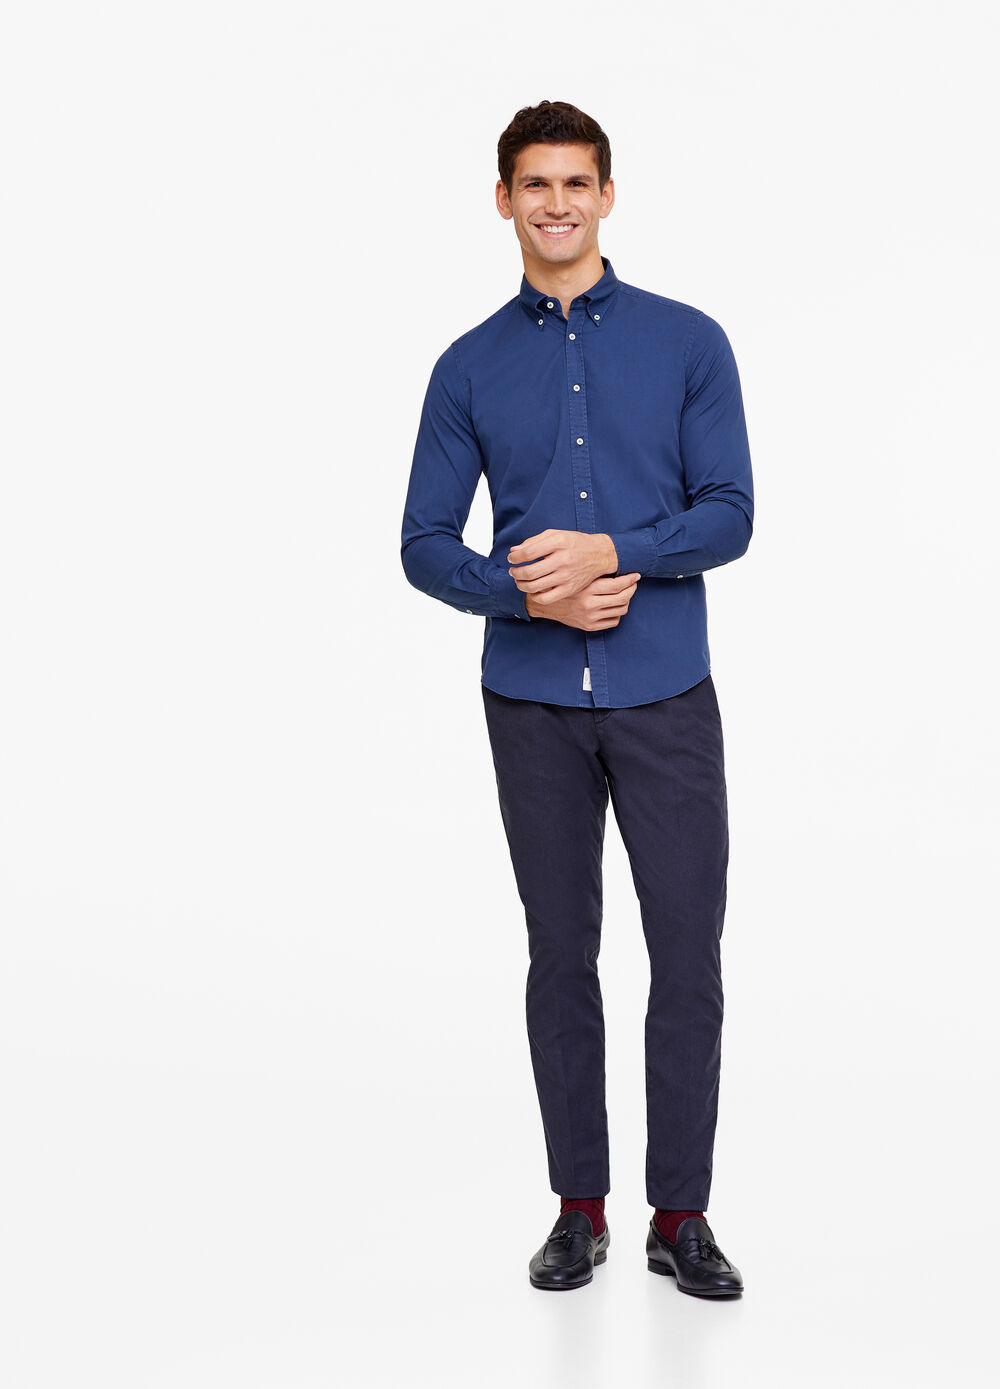 Rumford shirt with button-down collar